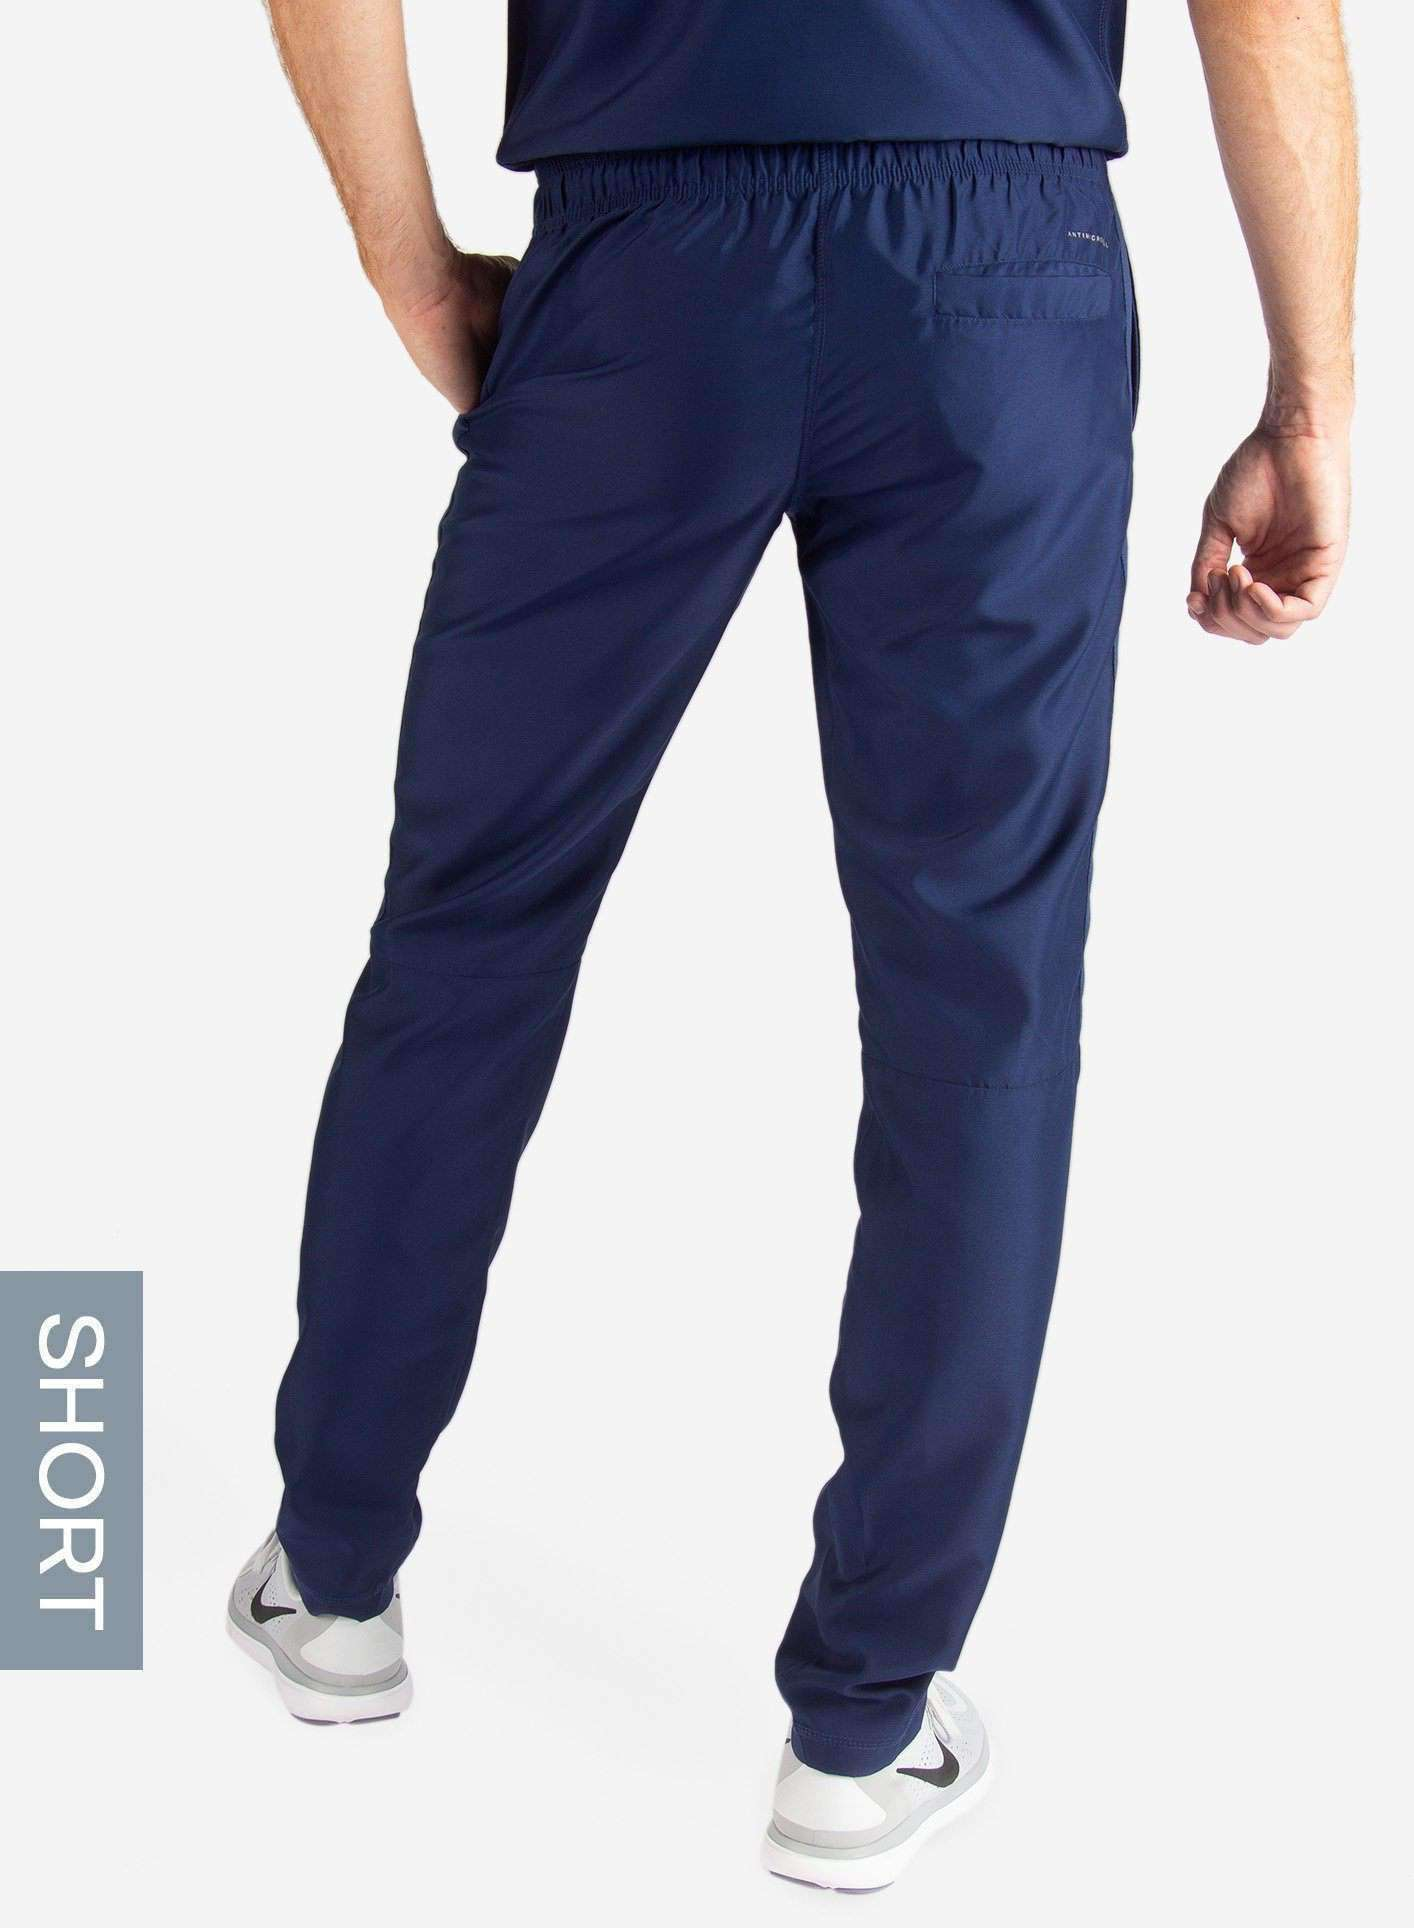 Men's Short Slim Fit Scrub Pants in Navy Blue Back View